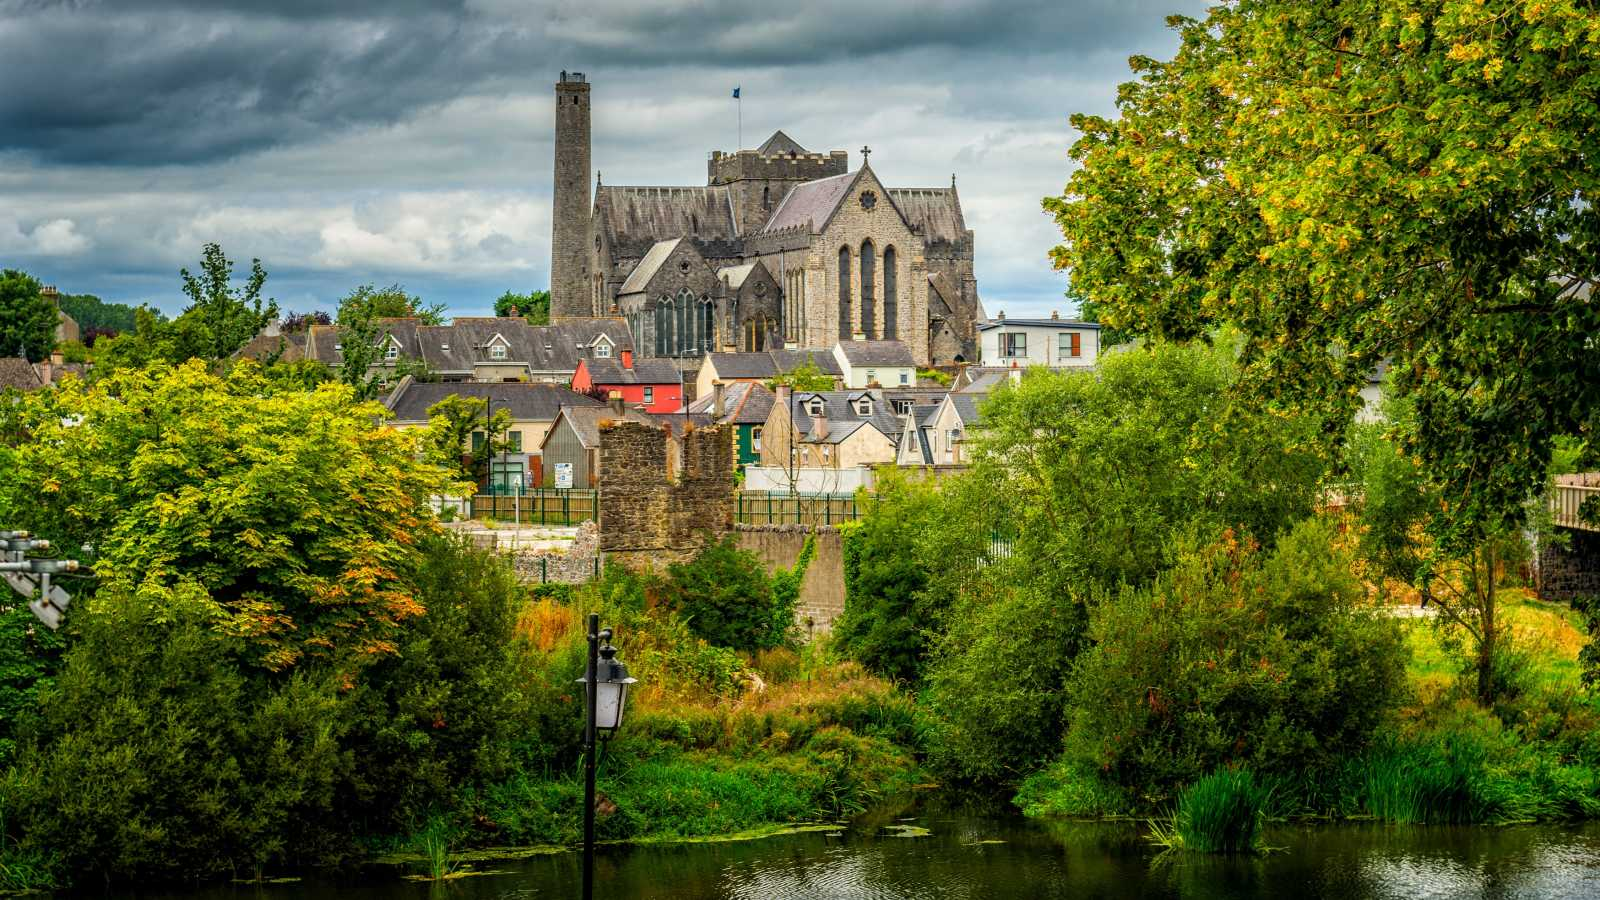 Saint Canice Kathedrale in Kilkenny, Irland